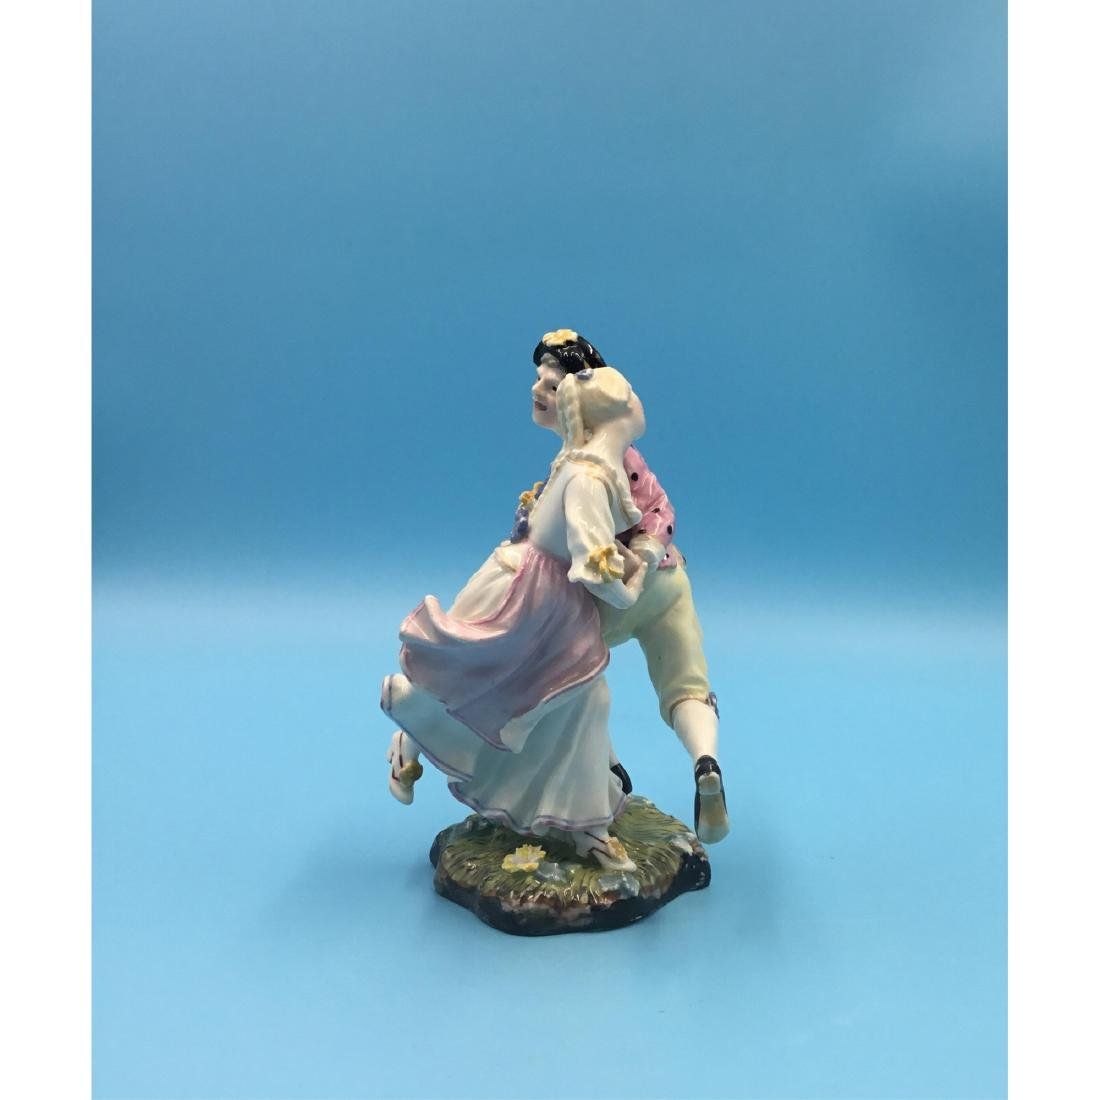 HOCHST 18TH C GERMAN PORCELAIN GROUP FIGURINE - 2